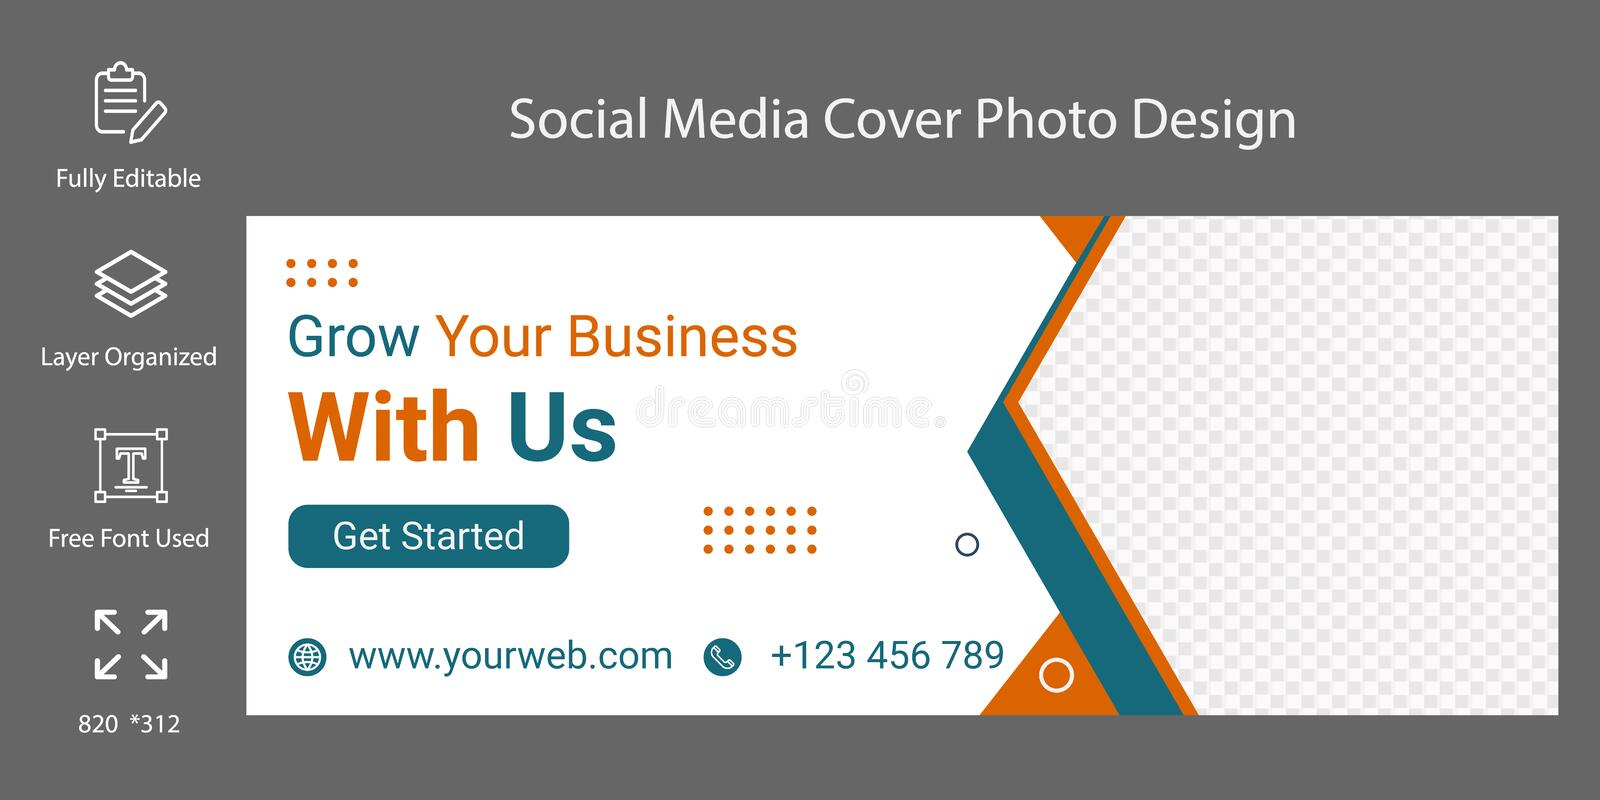 Premium document designs for creating professional ads. Social Media Cover Template Fully Editable Or Advertising Design Stock Photo Image Of Professional Creative 213214750